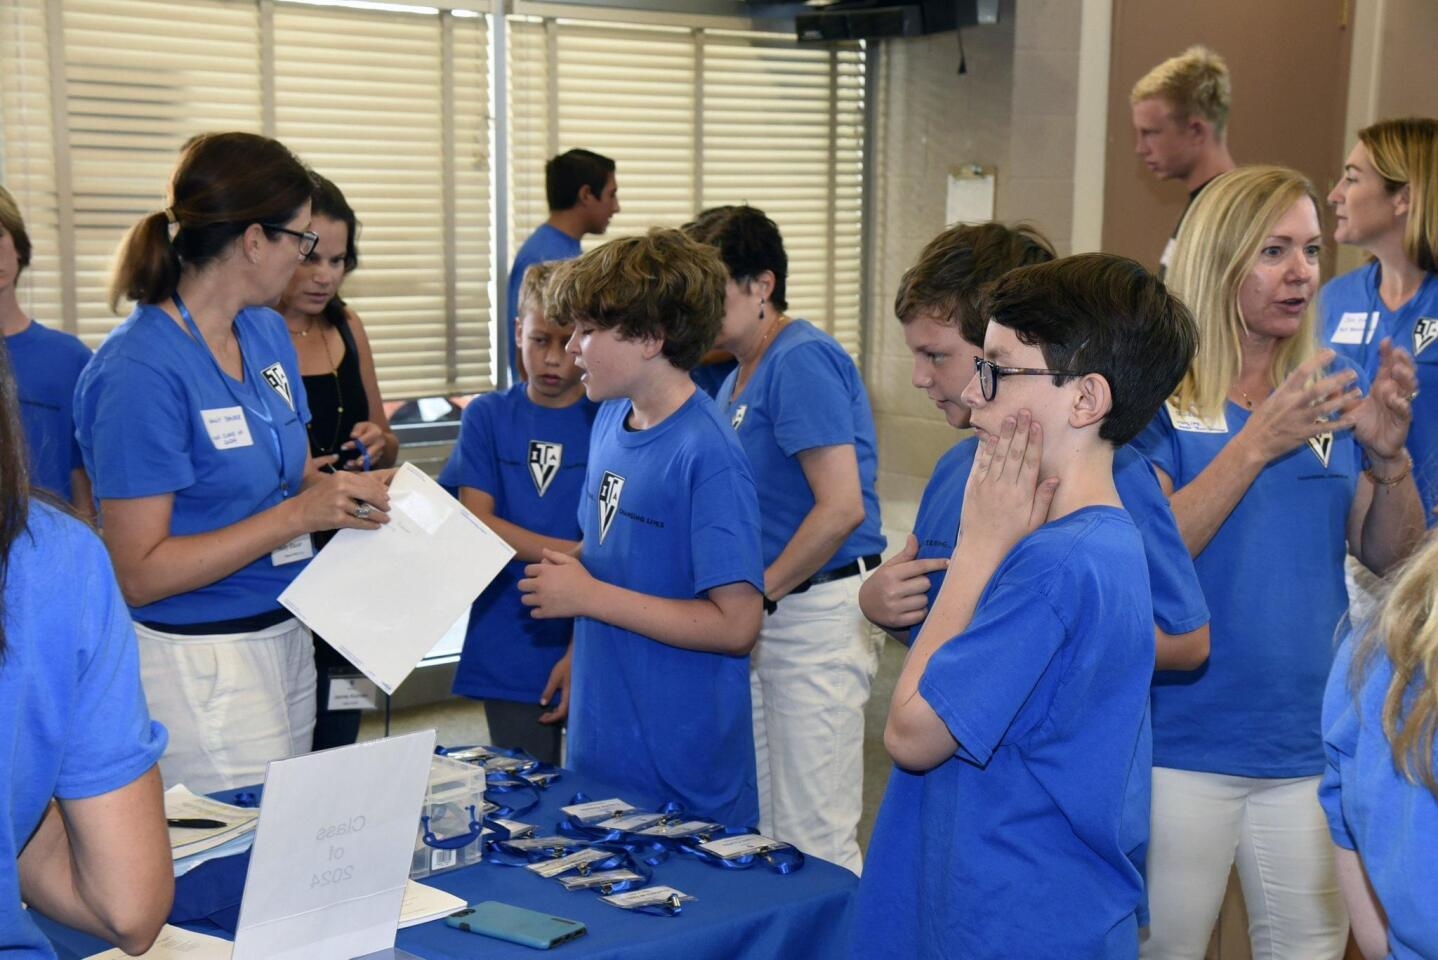 Teen Volunteers in Action SD Chapter 3 Fall Kick-off event